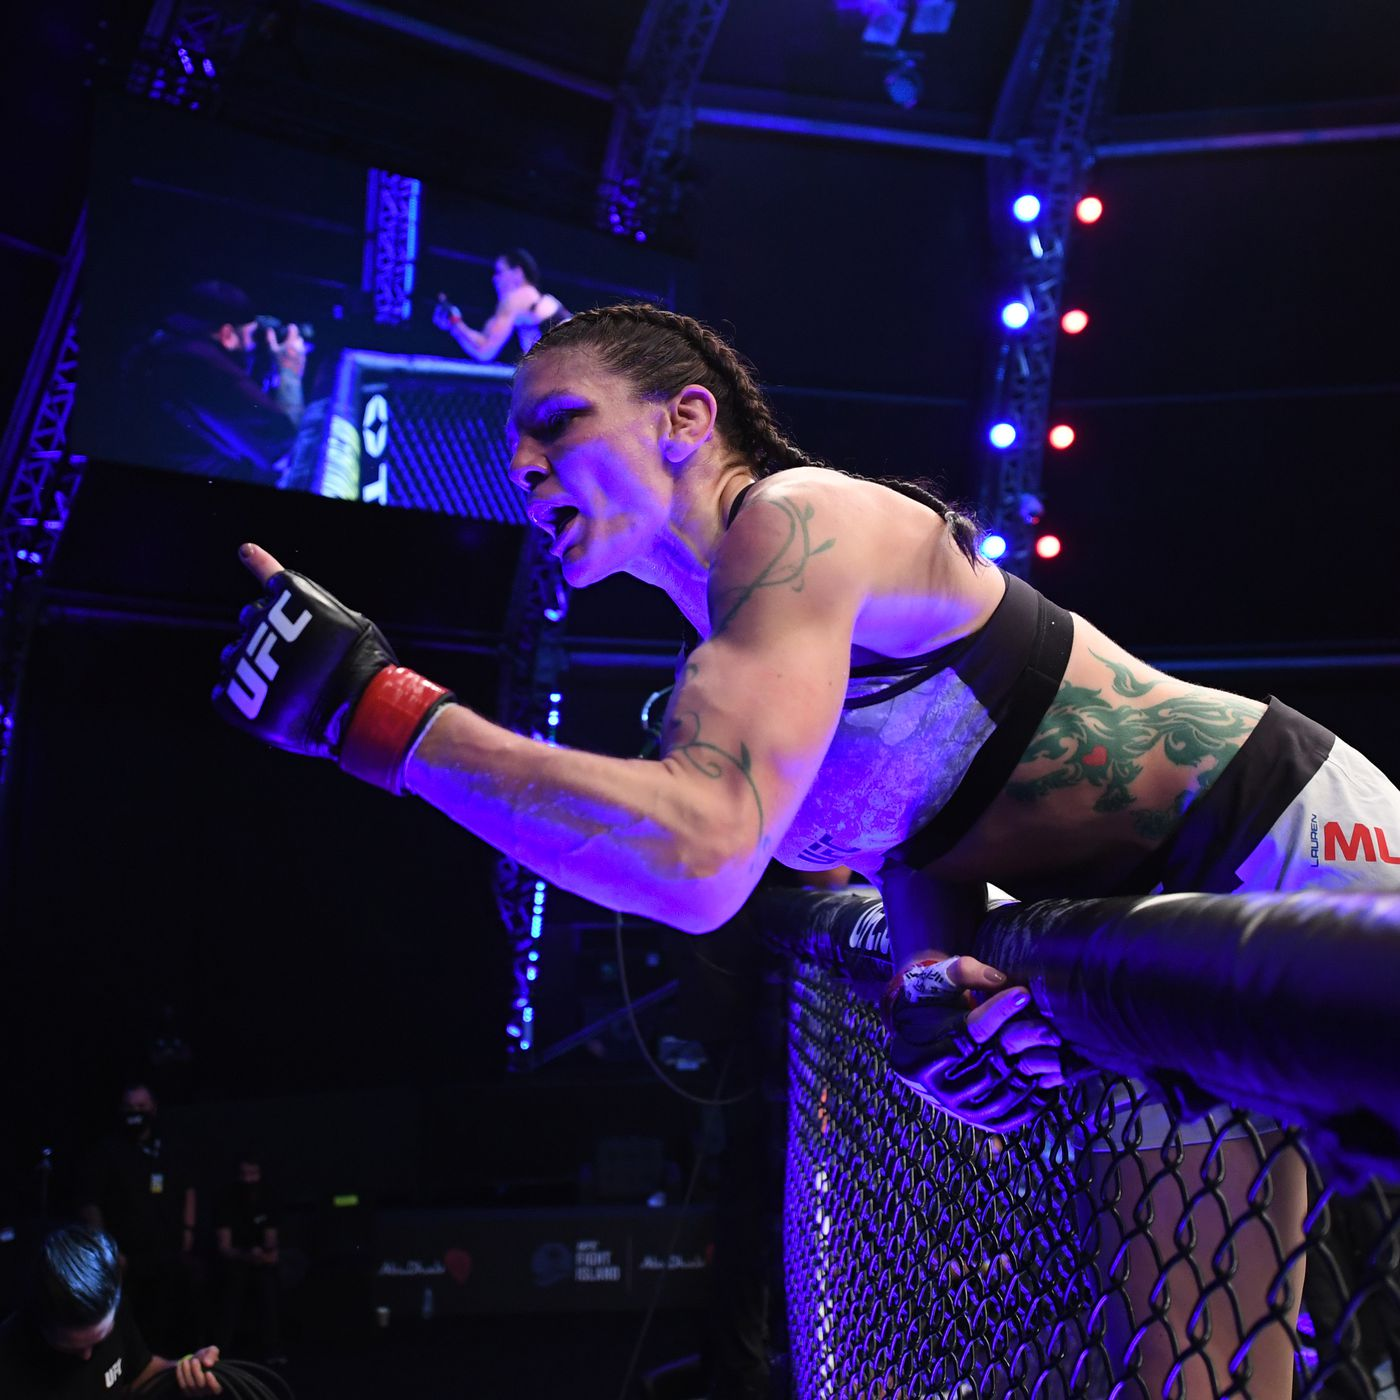 UFC 254 results: Lauren Murphy calls for title shot after tapping out  Liliya Shakirova with rear-naked choke - MMA Fighting